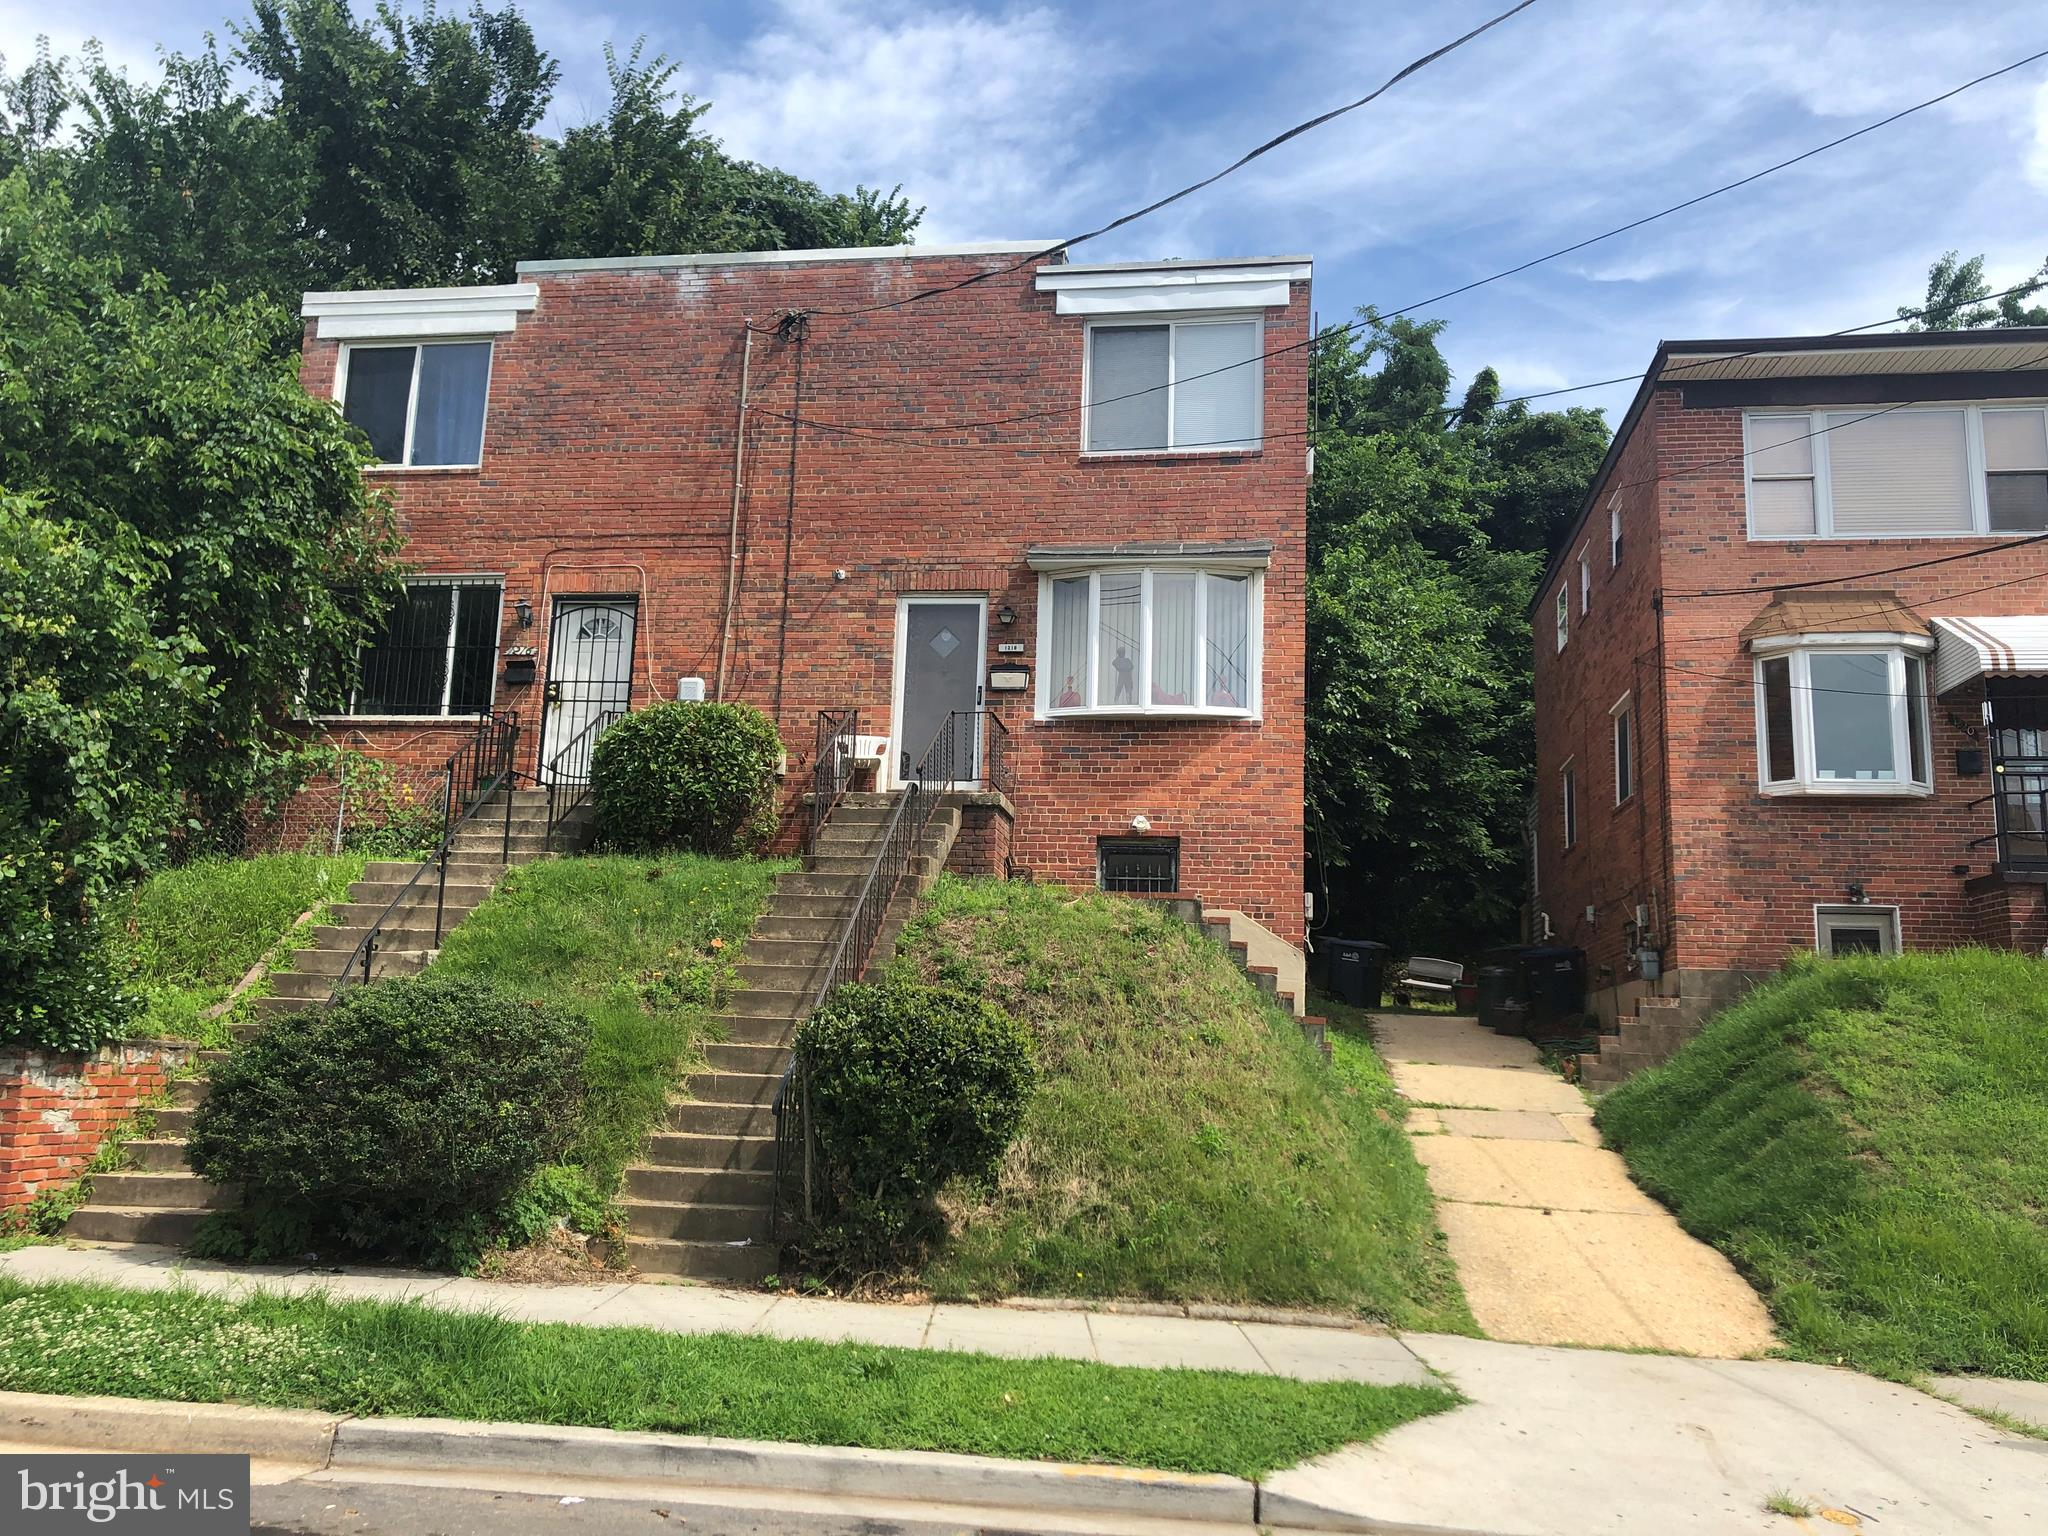 Come view this brick home located on a quiet tree lined street in Congress Heights. This area may be